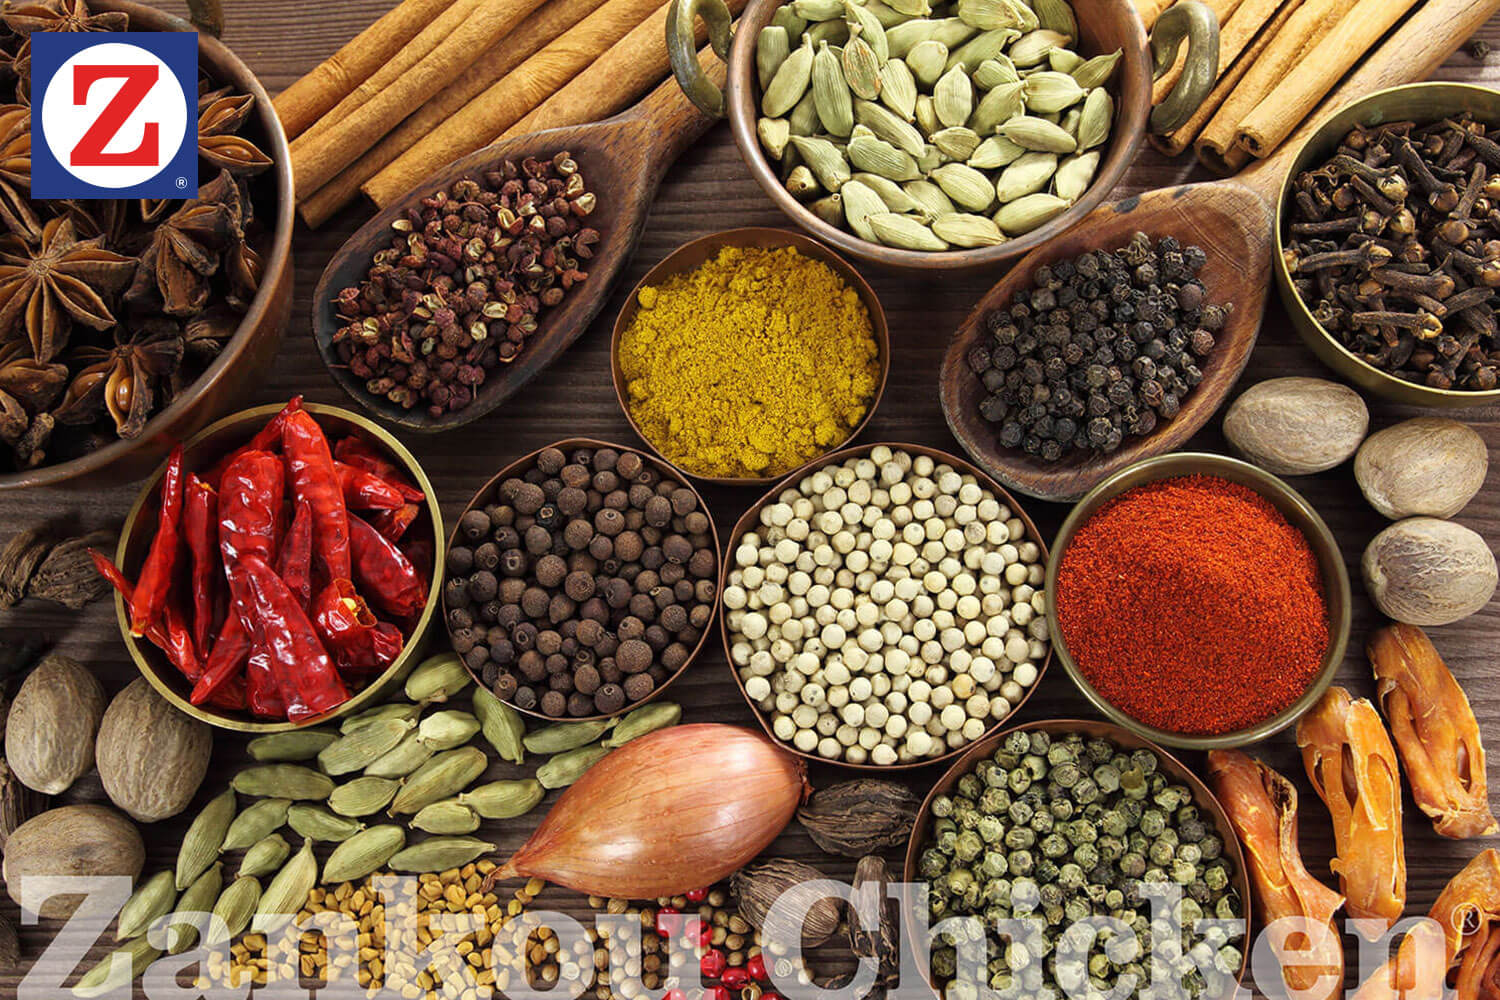 Looking down on a table full of spices in wooden bowls